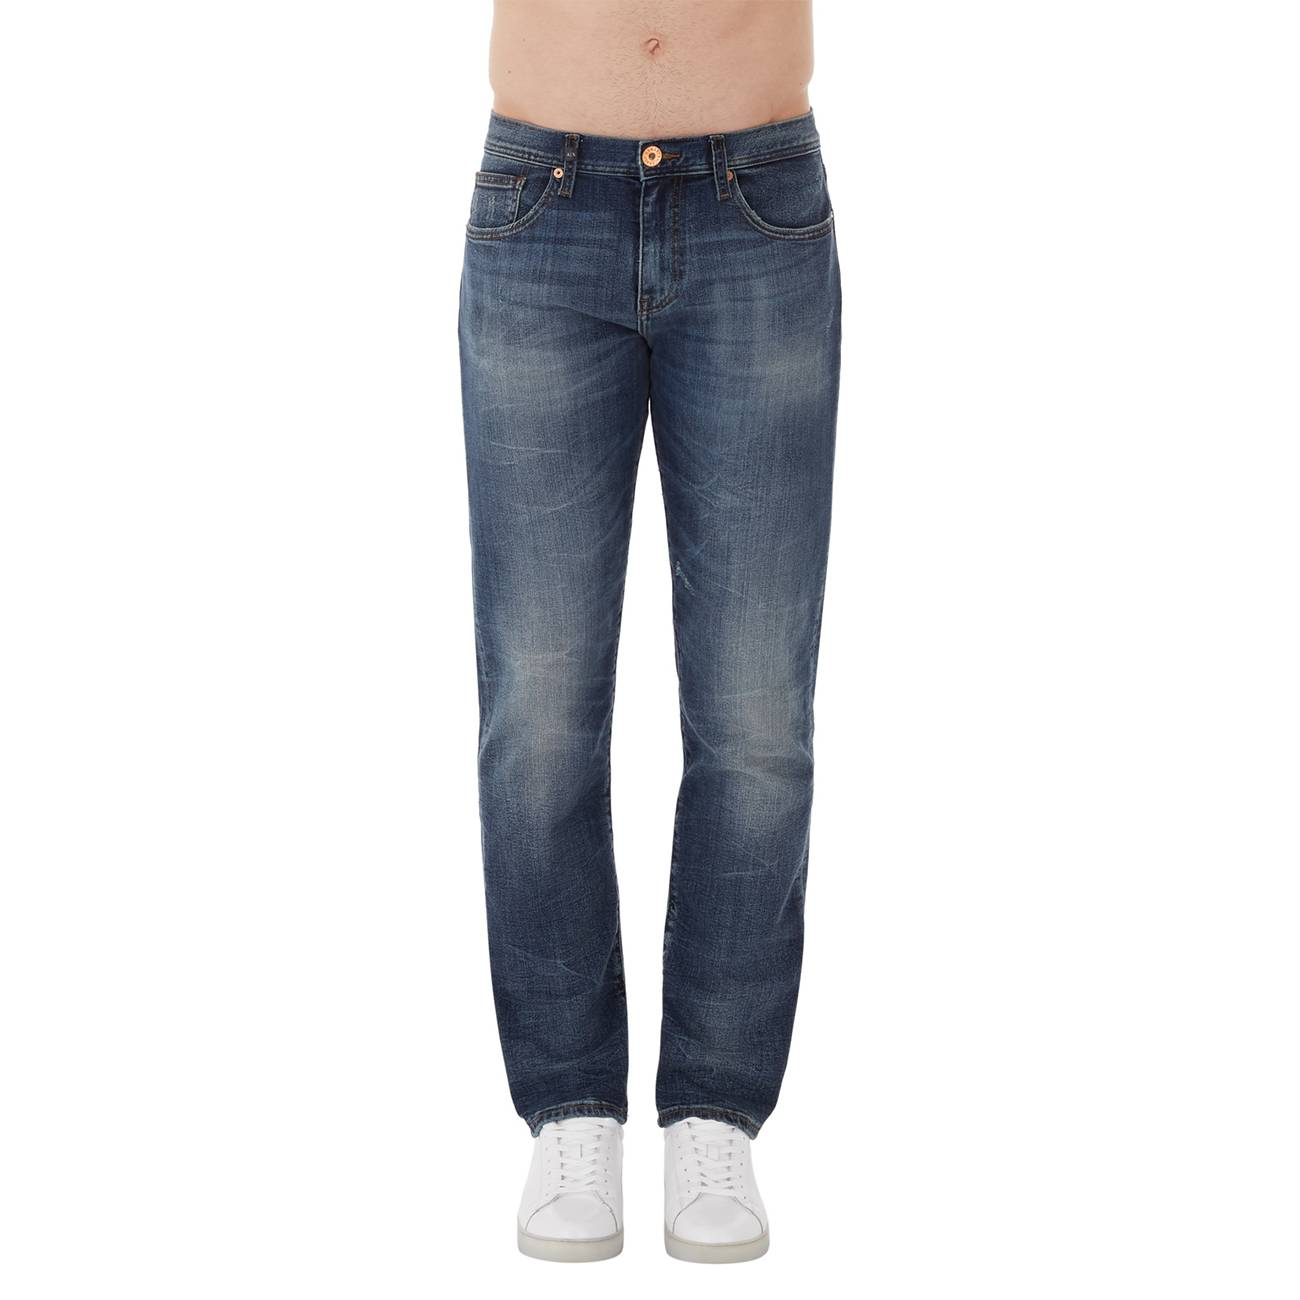 Jeans 38r